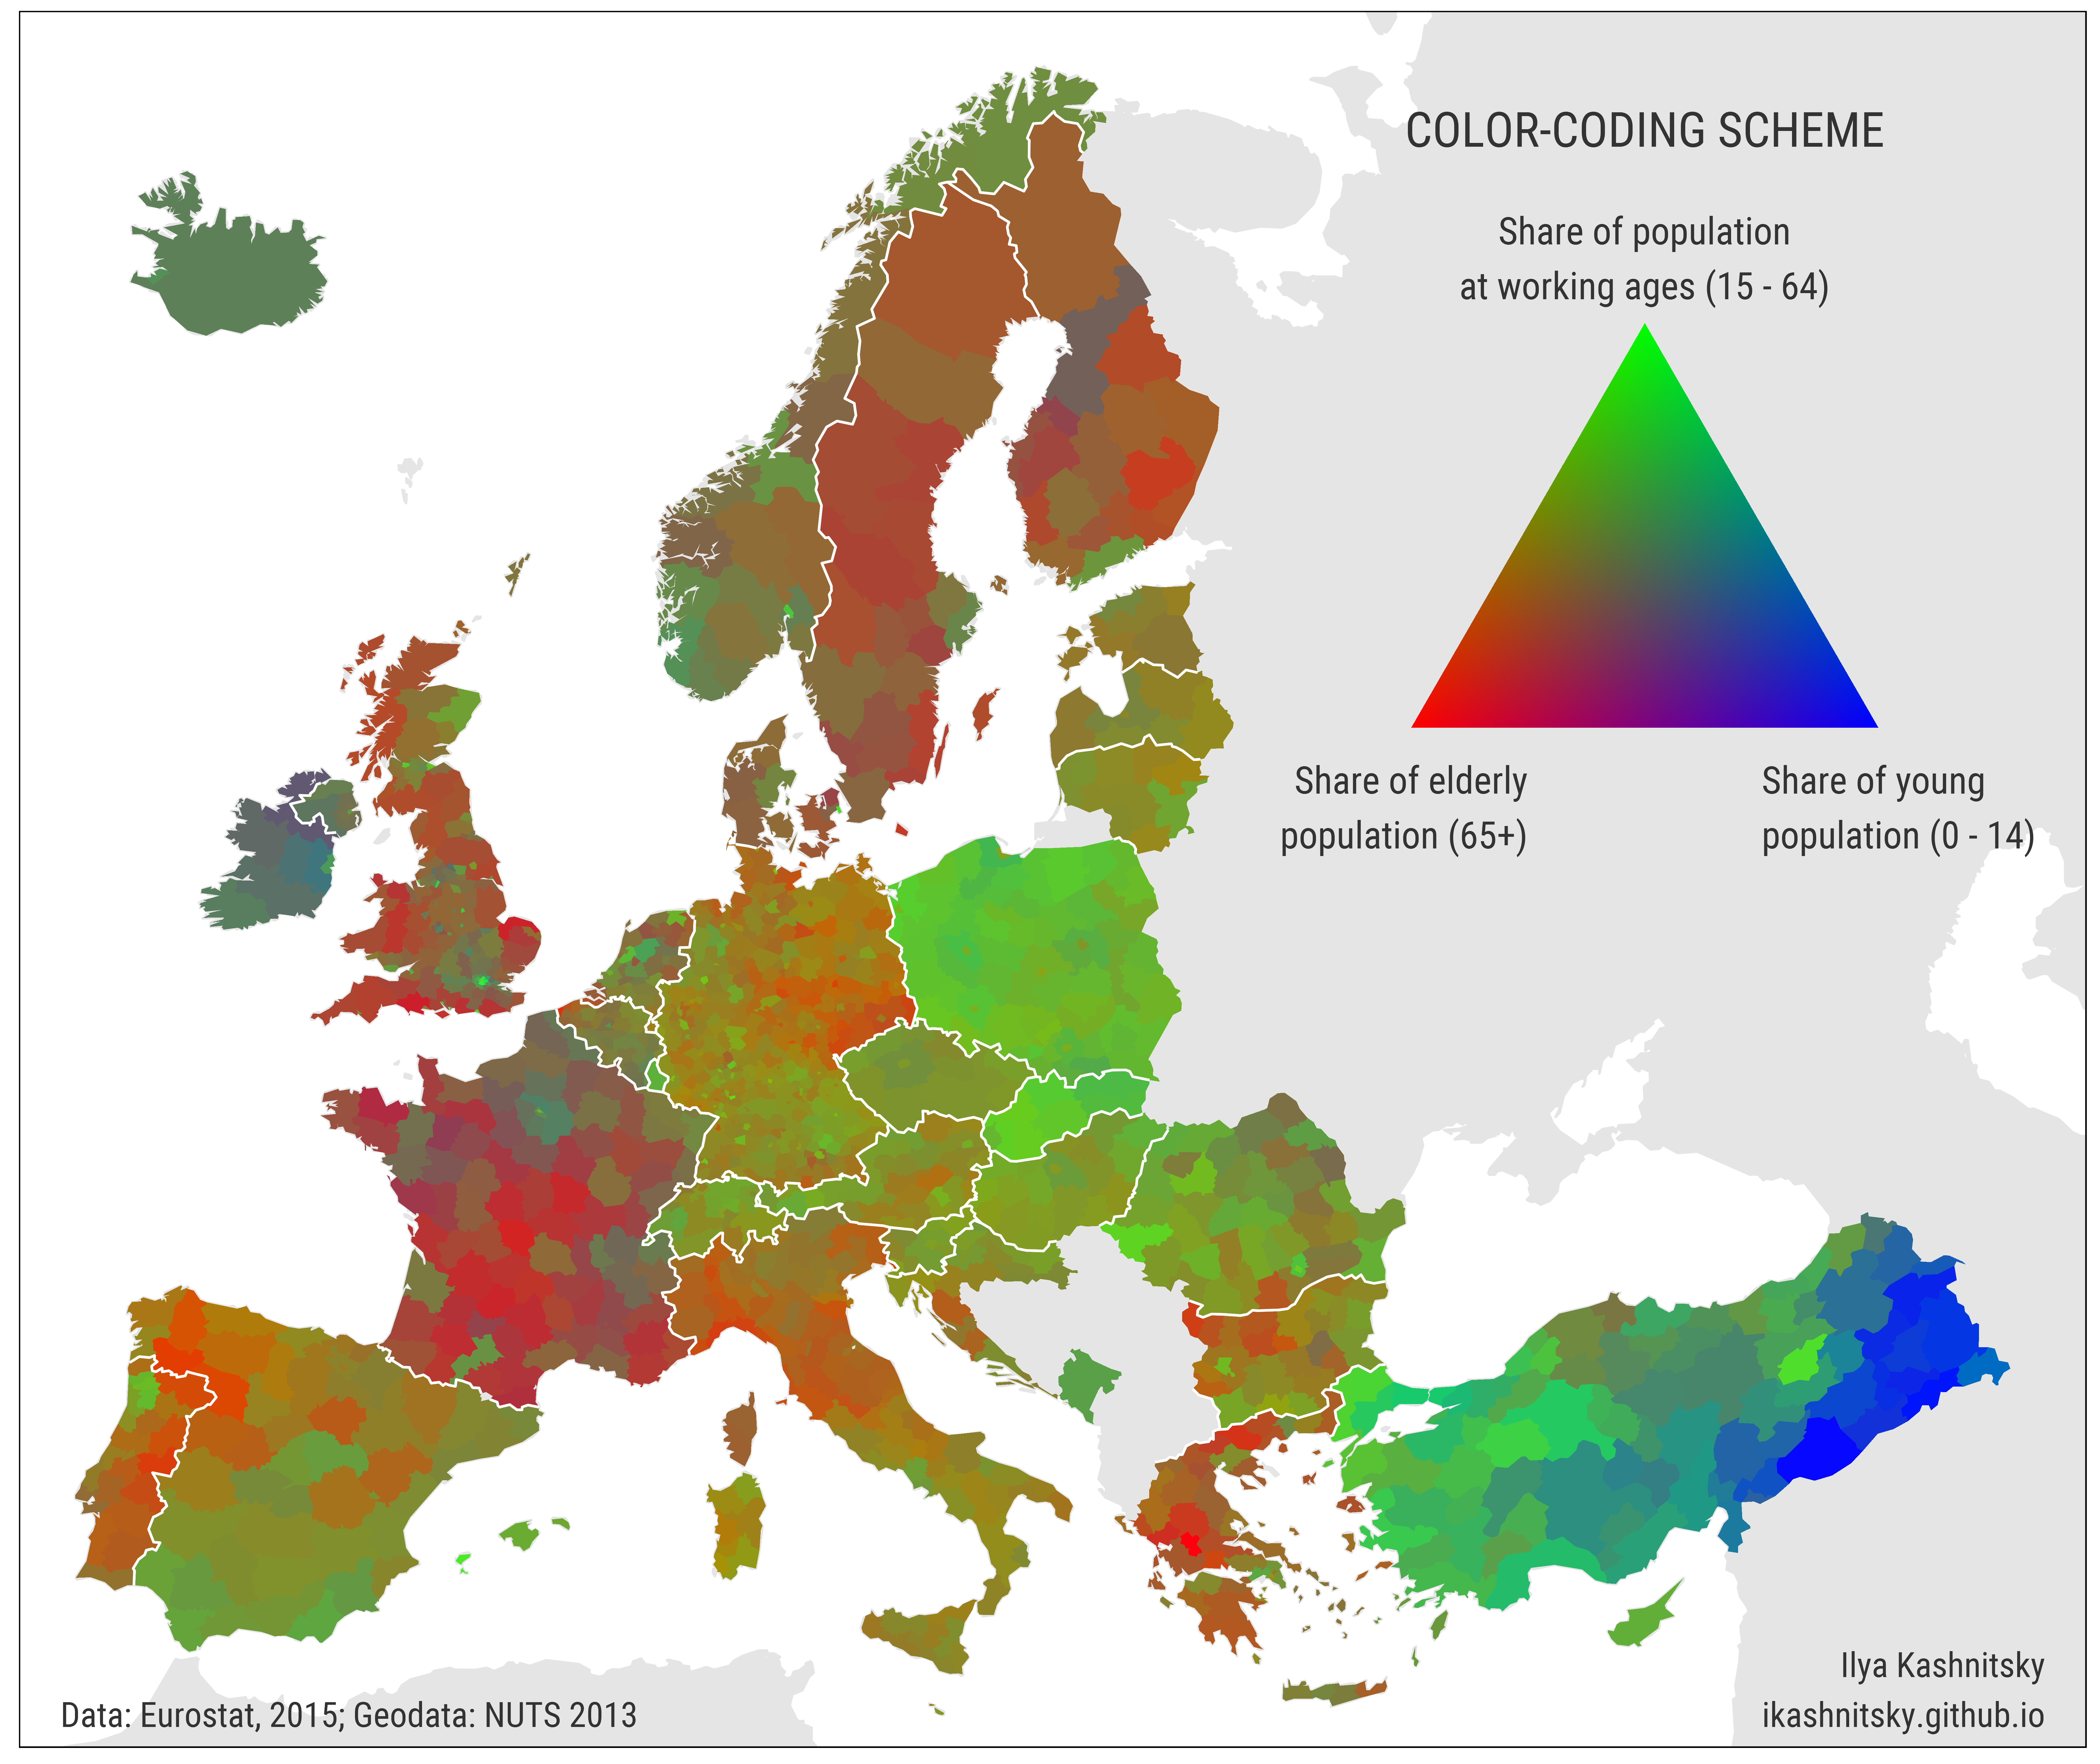 Colorcoded map regional population structures at a glance Ilya